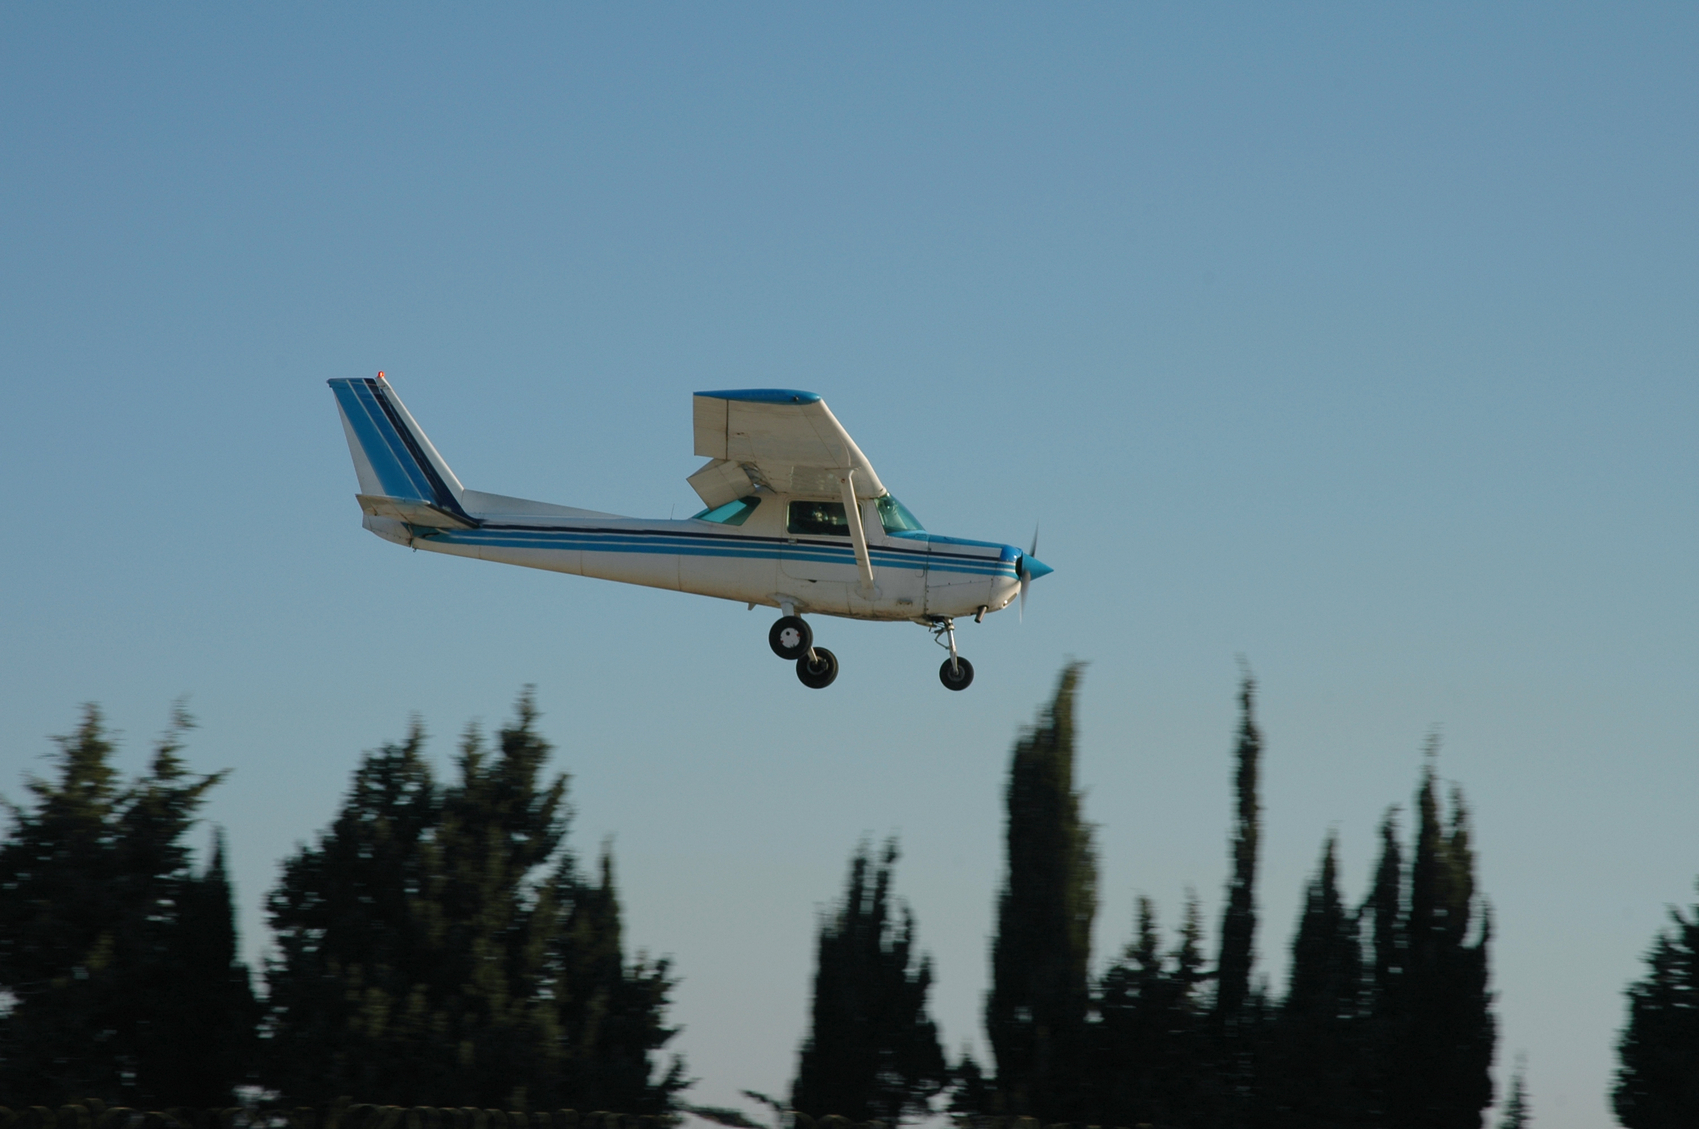 A Cessna aircraft, similar to the one that landed in a Fife field